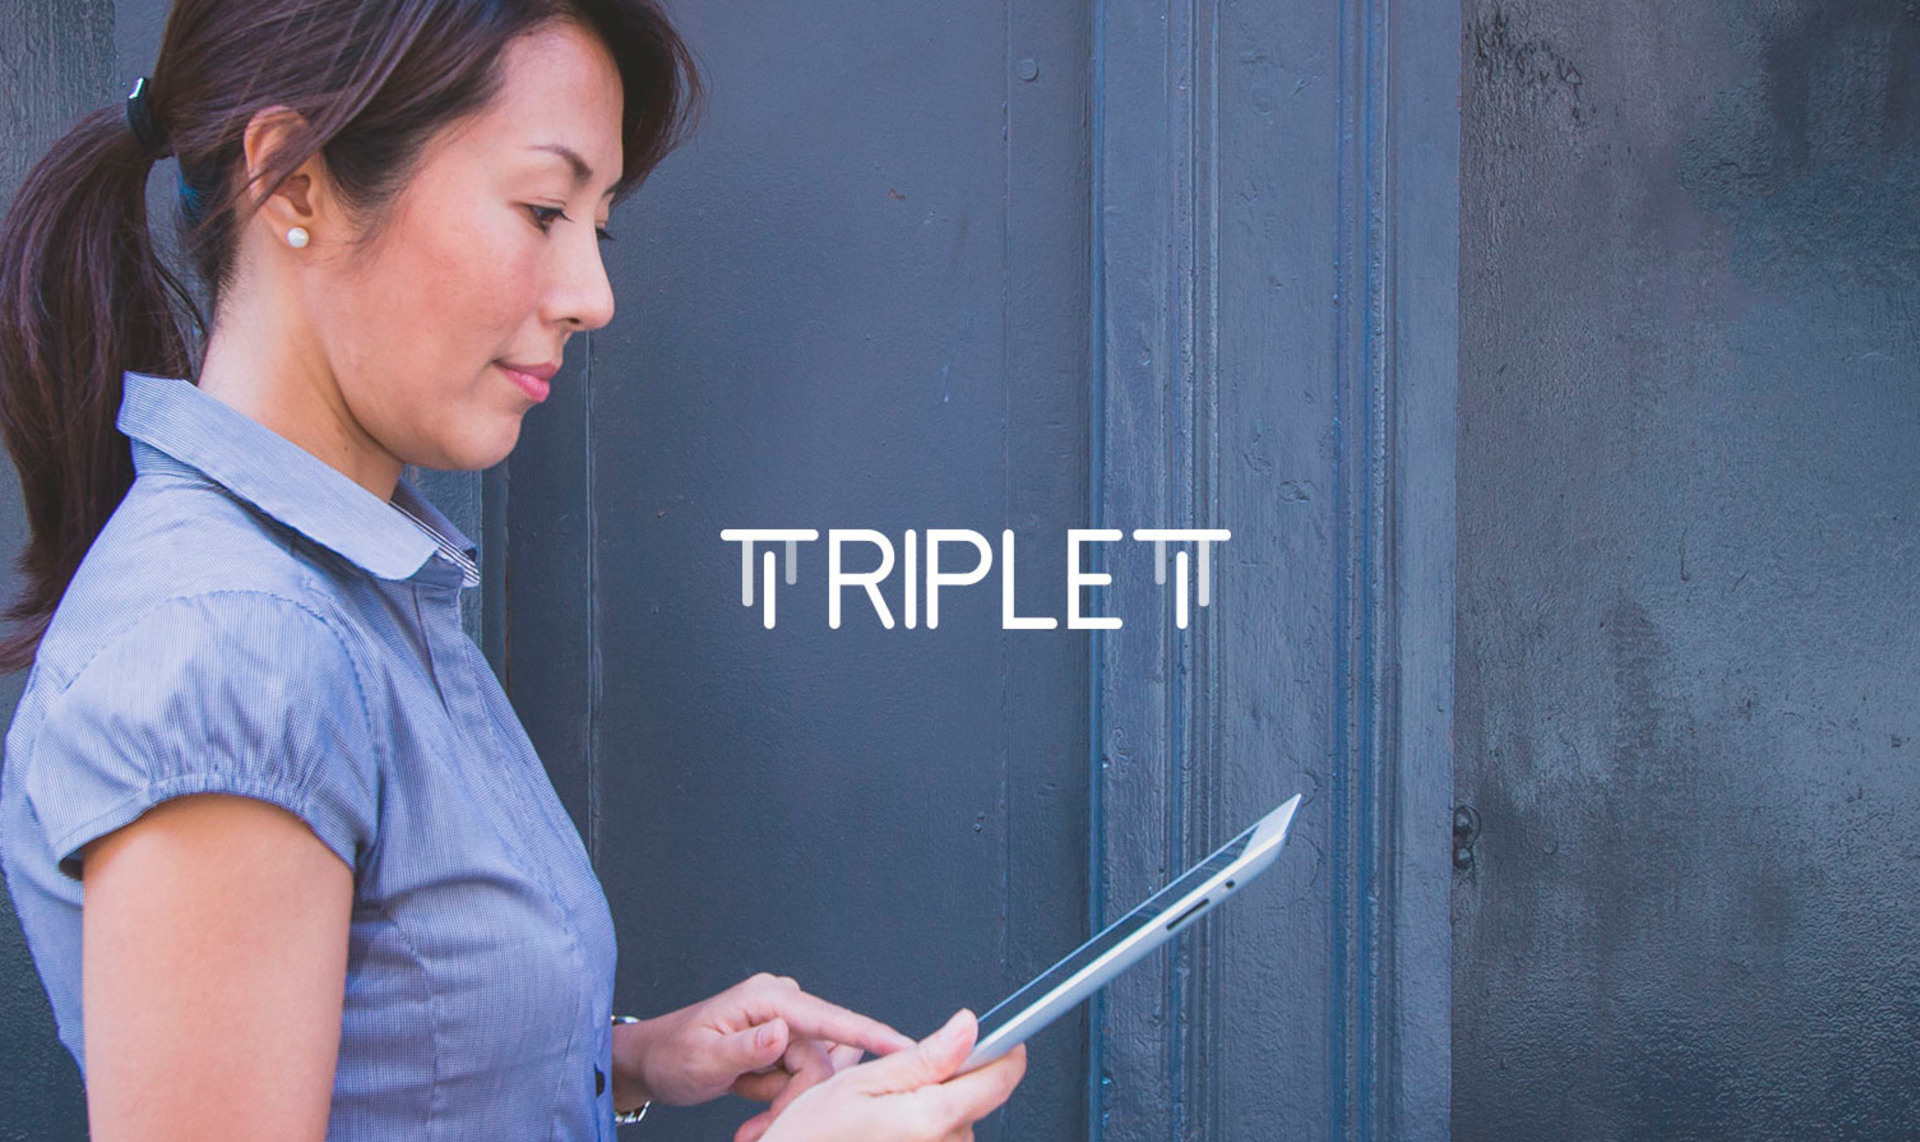 Medium triplet newsletter